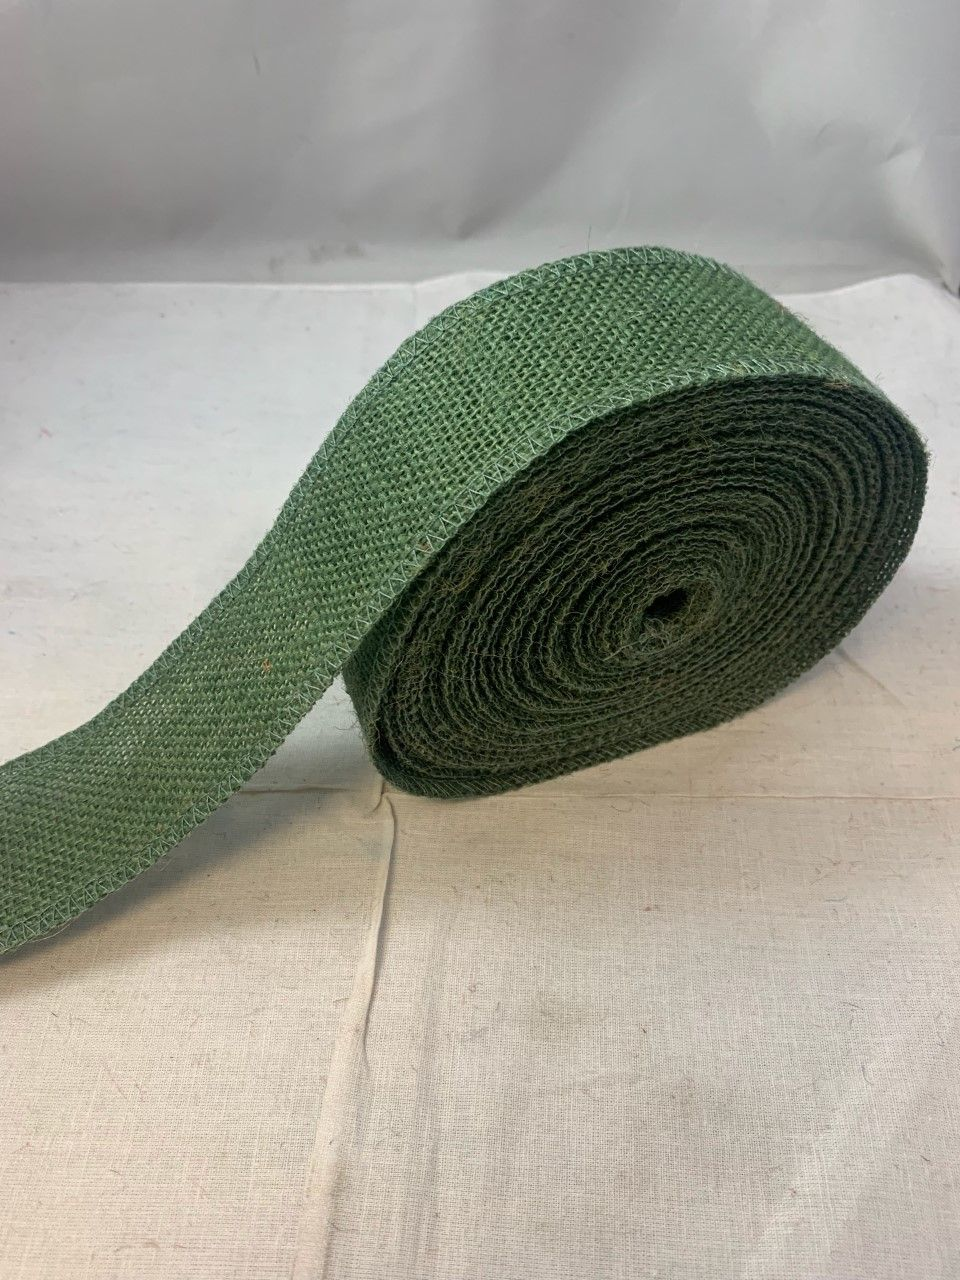 2 Hunter Green Burlap Ribbon 10 Yards Serged Made In Usa In 2020 Burlap Ribbon Burlap Hunter Green